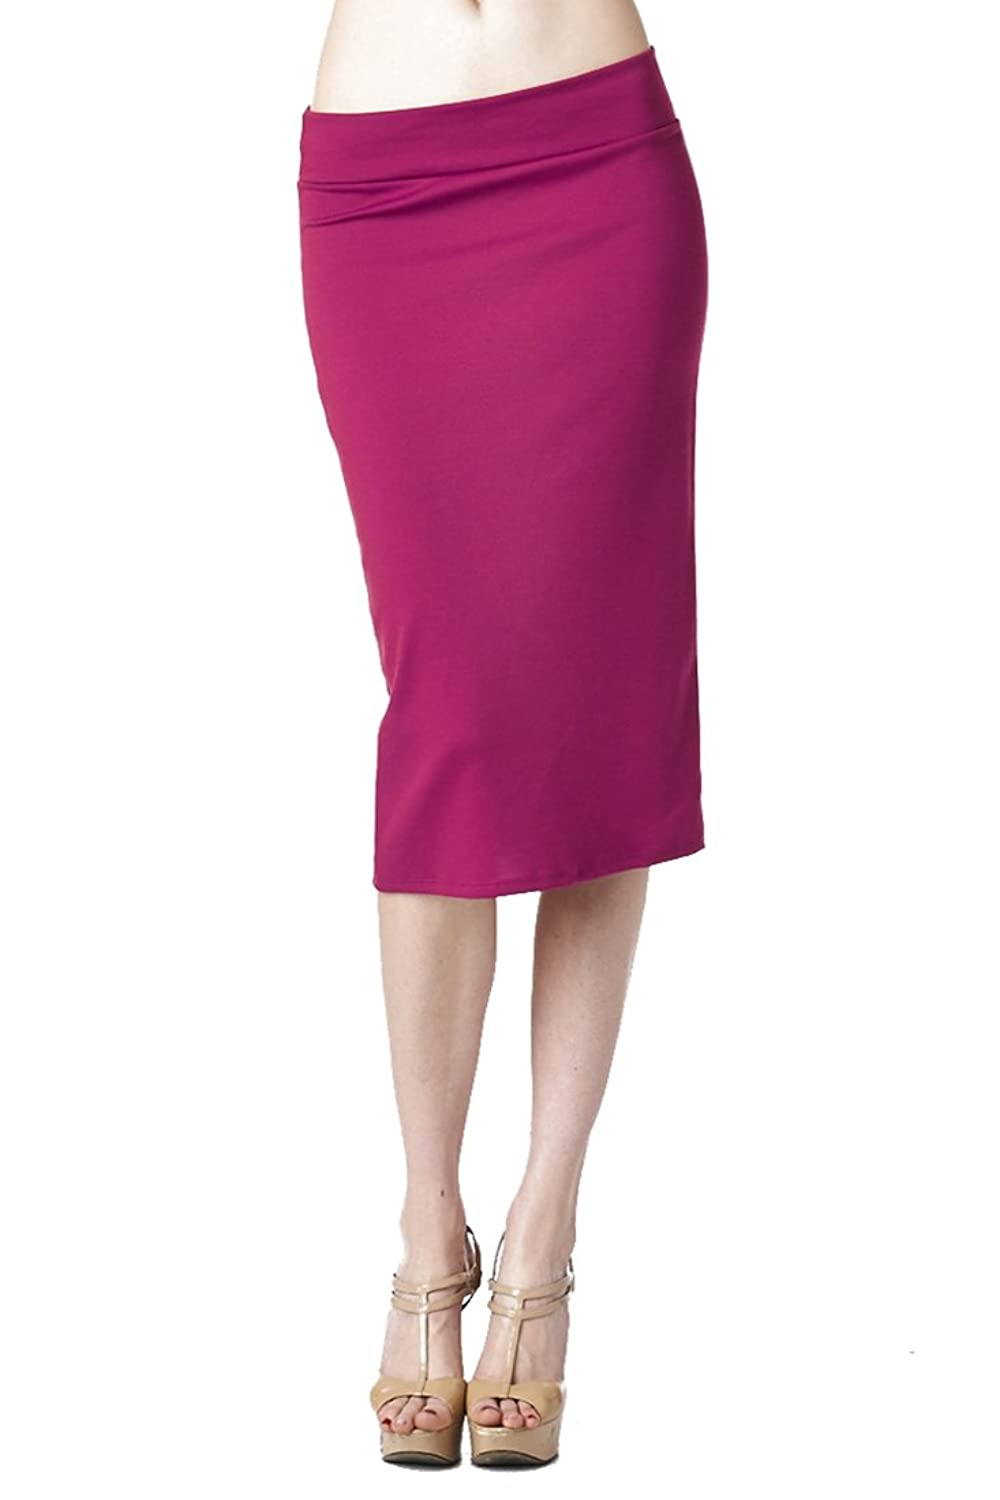 82 Days Women'S Casual To Office Wear Below Knee Various Style Of Skirts